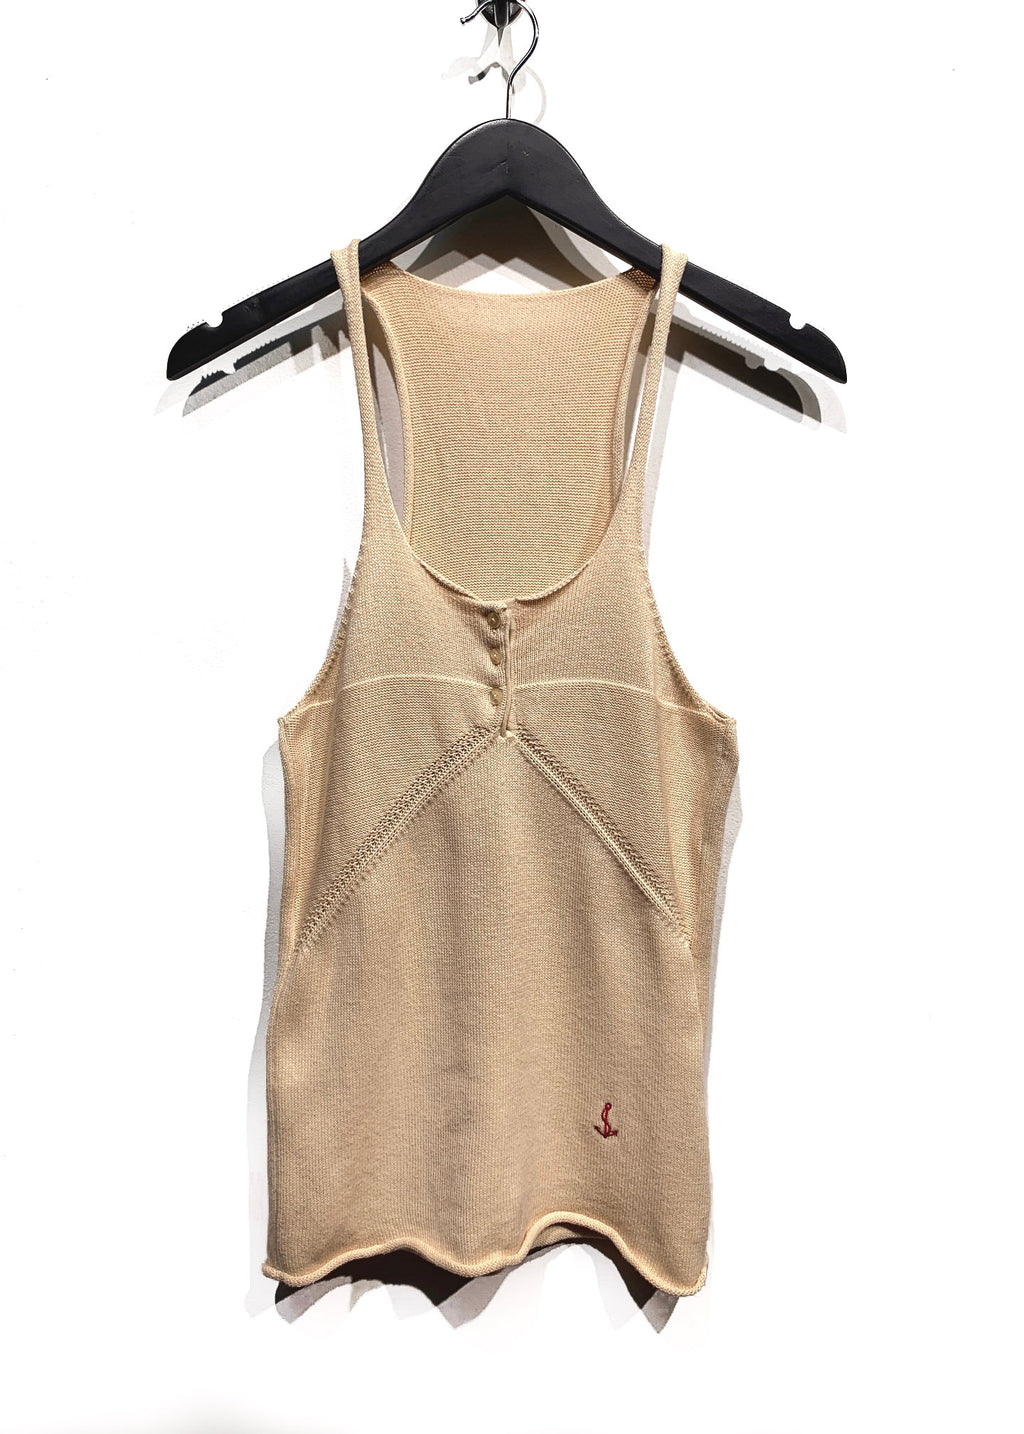 Balenciaga SS07 Beige Cotton Knit Anchor Tank Top